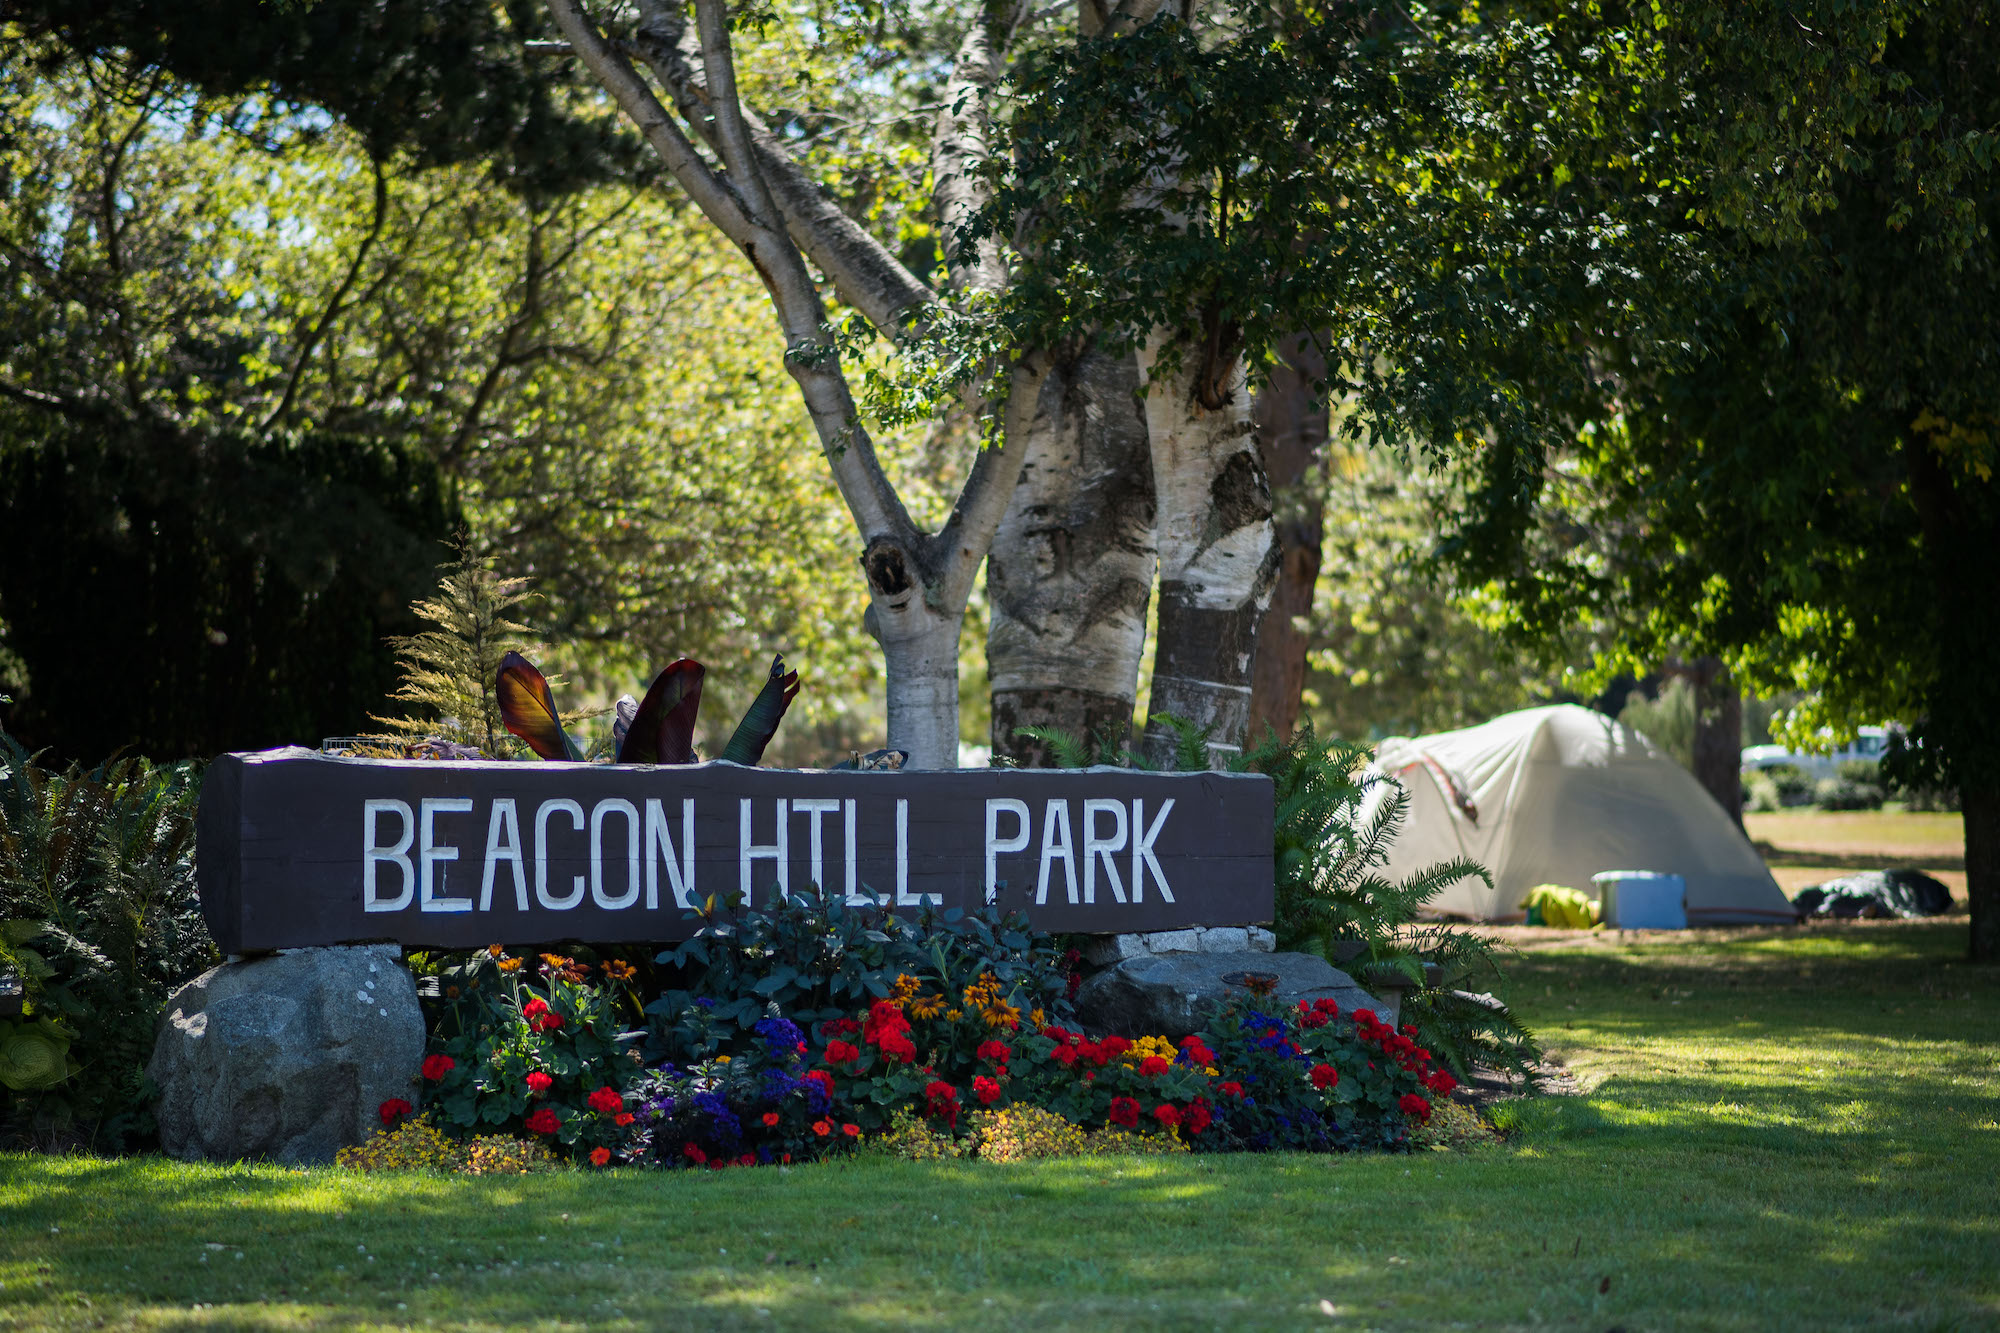 Once-progressive Friends of Beacon Hill Park used to fight for the marginalized. What happened?